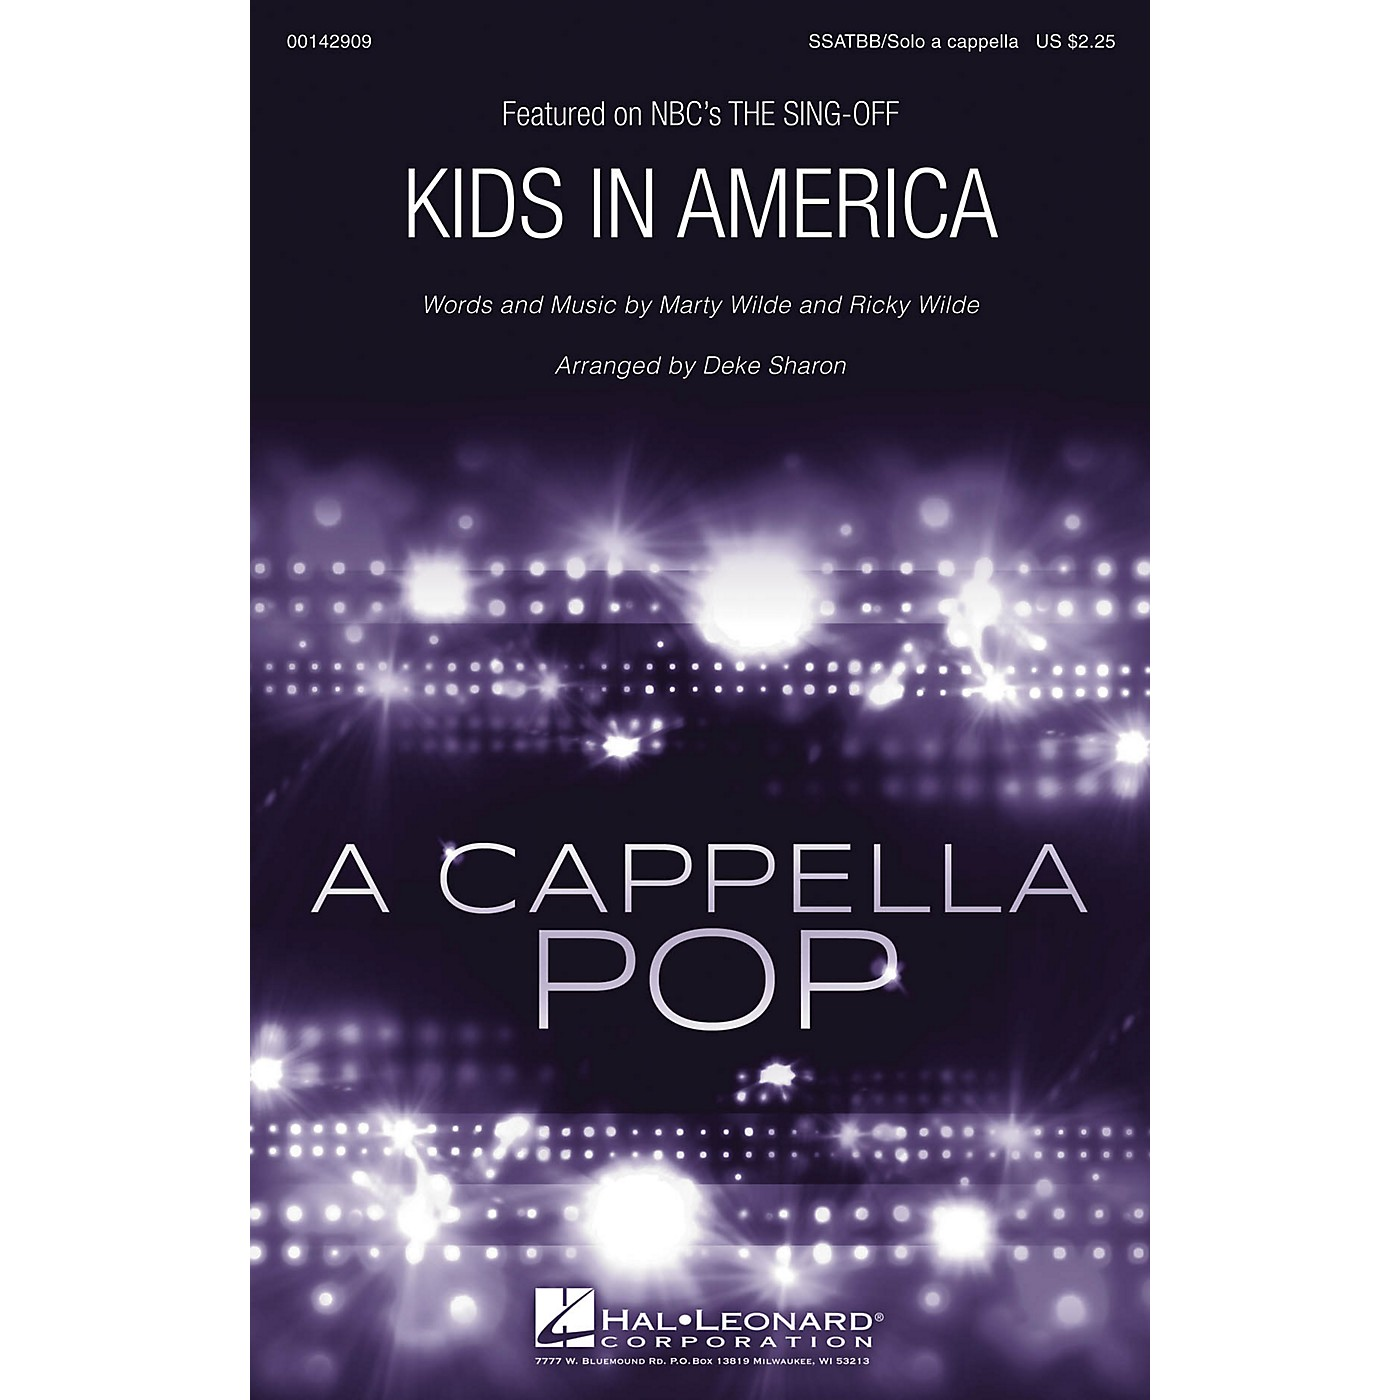 Hal Leonard Kids in America from The Sing-Off (SSATBB/Solo a cappella) arranged by Deke Sharon thumbnail